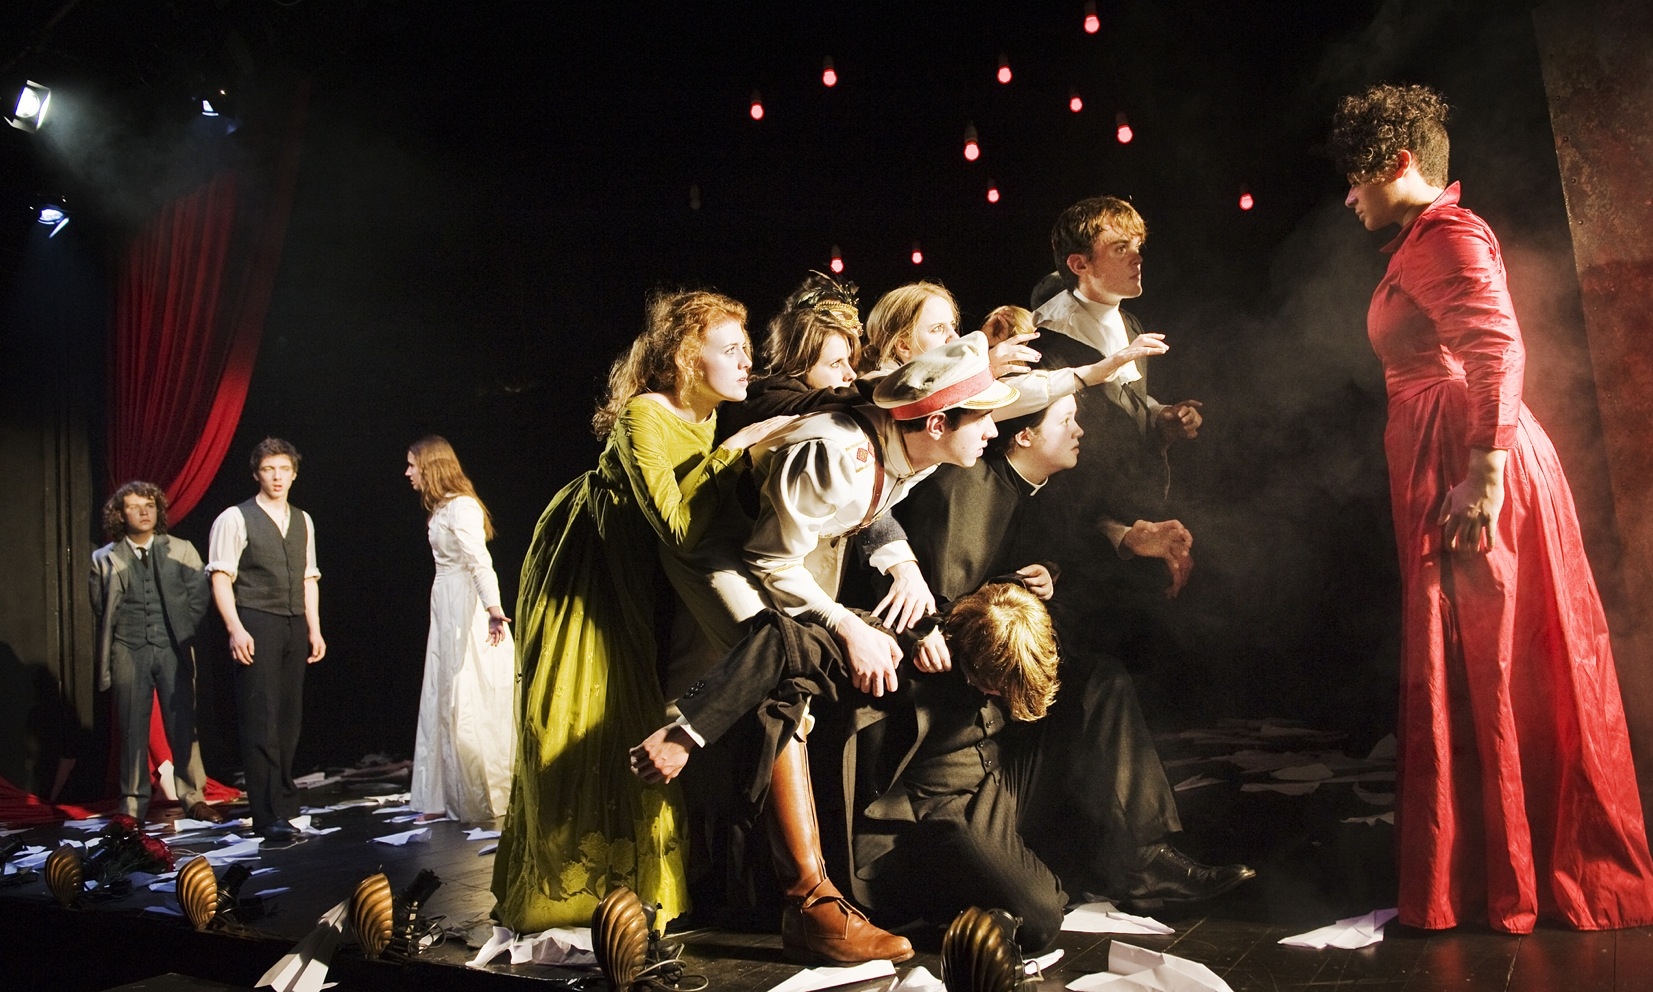 A Dream Play, Directed by Jimmy Fay - National Youth Theatre, 2010